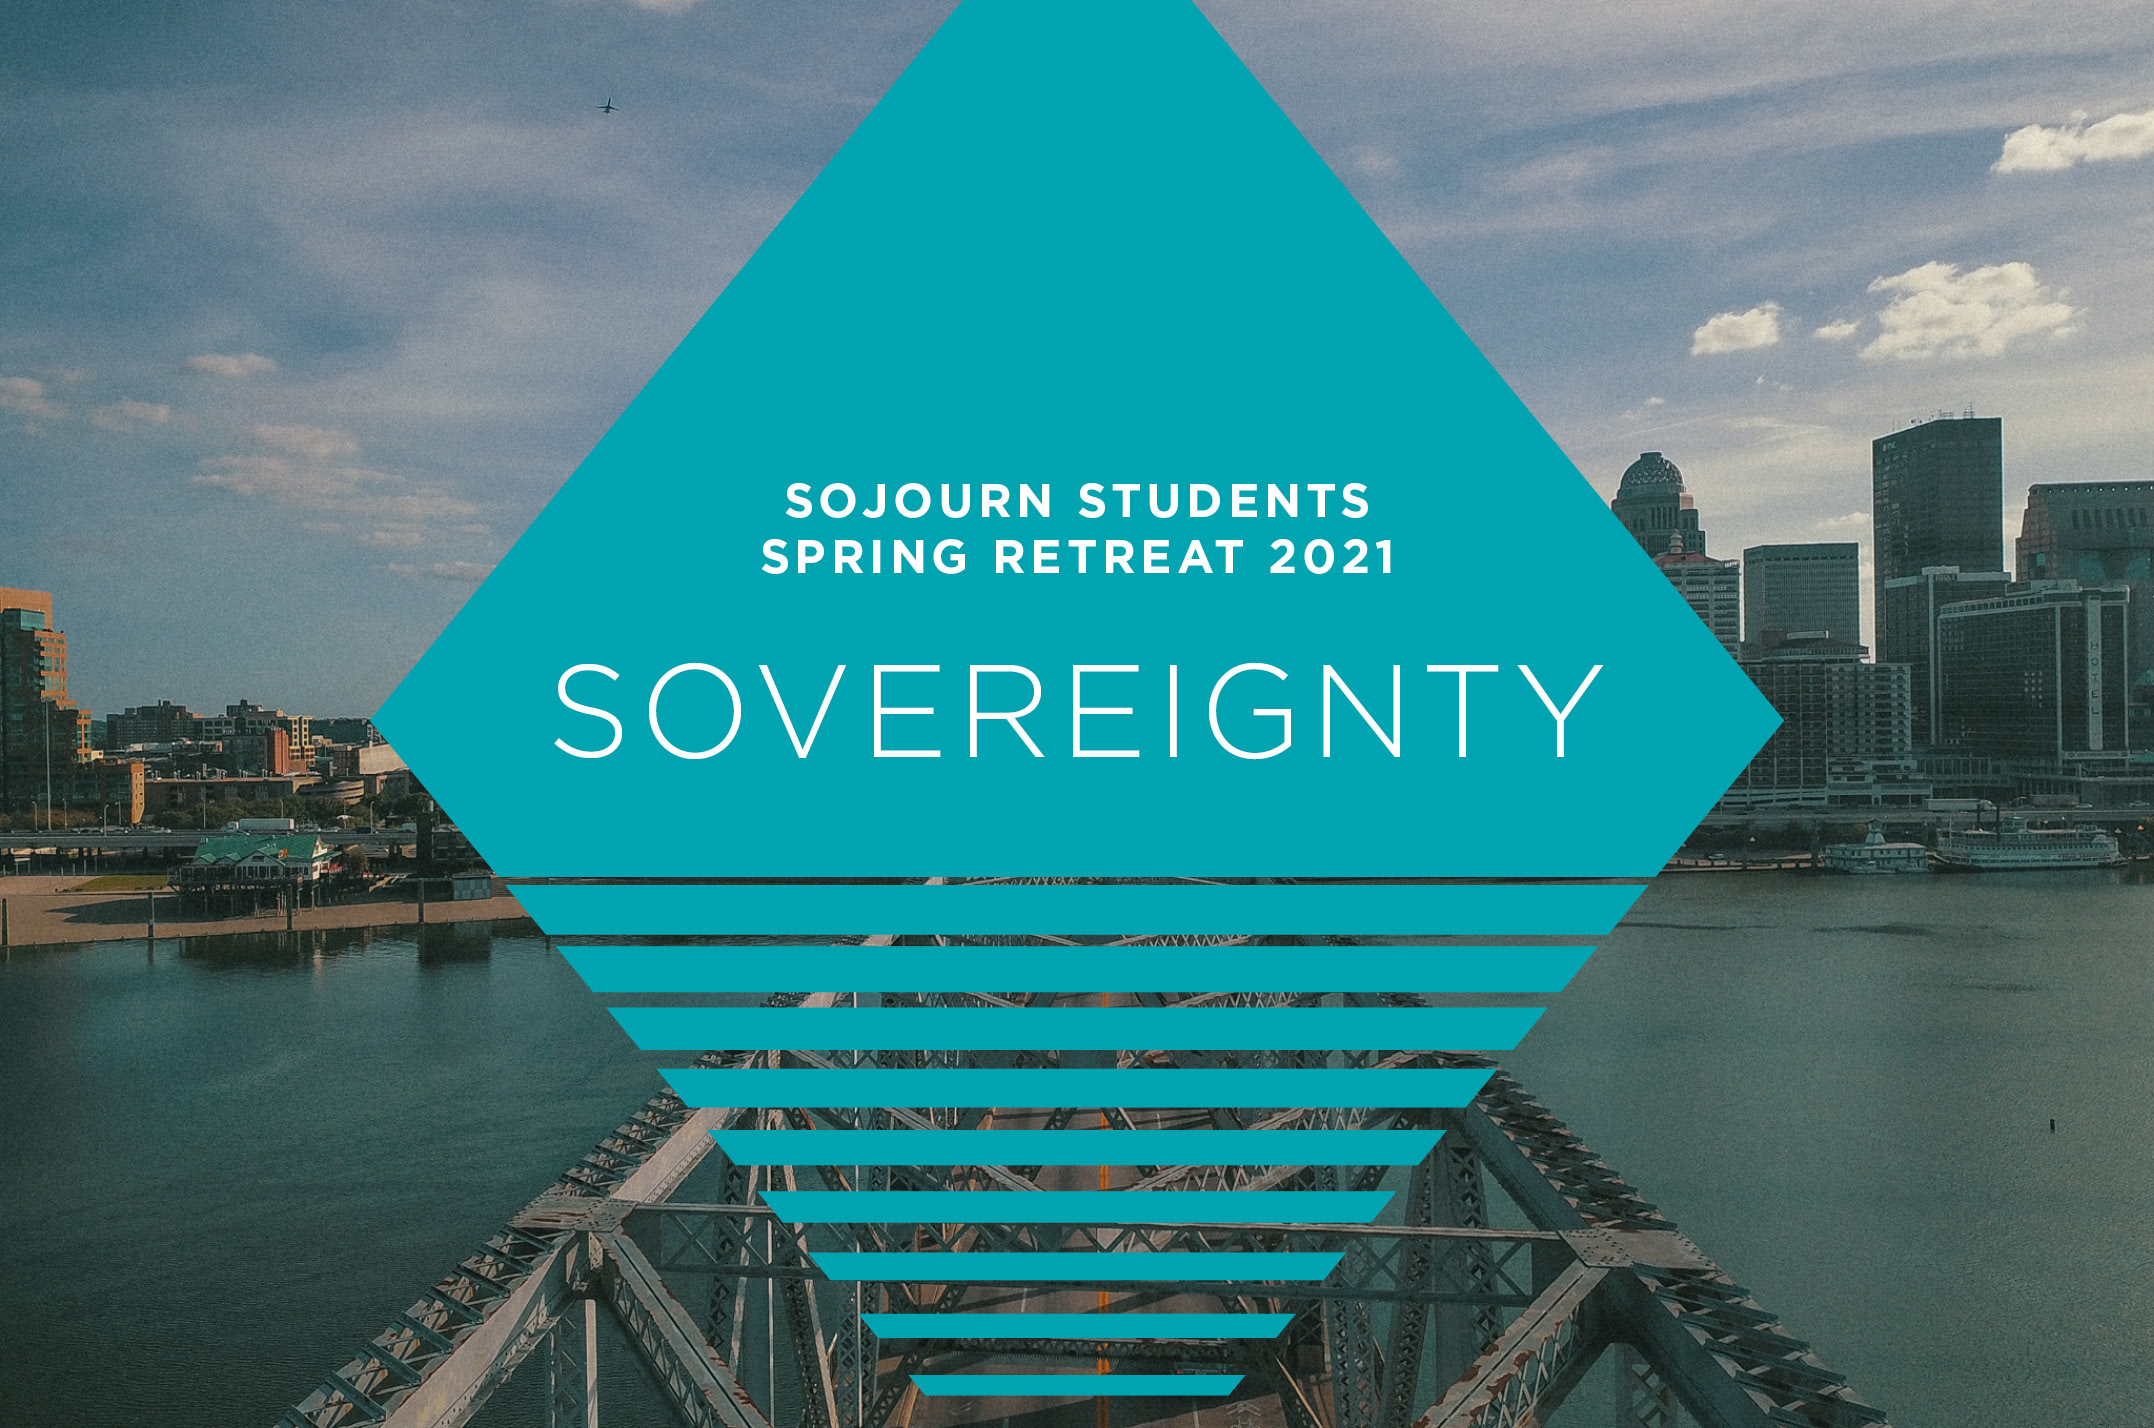 Sojourn Students Midtown: Spring Retreat 2021